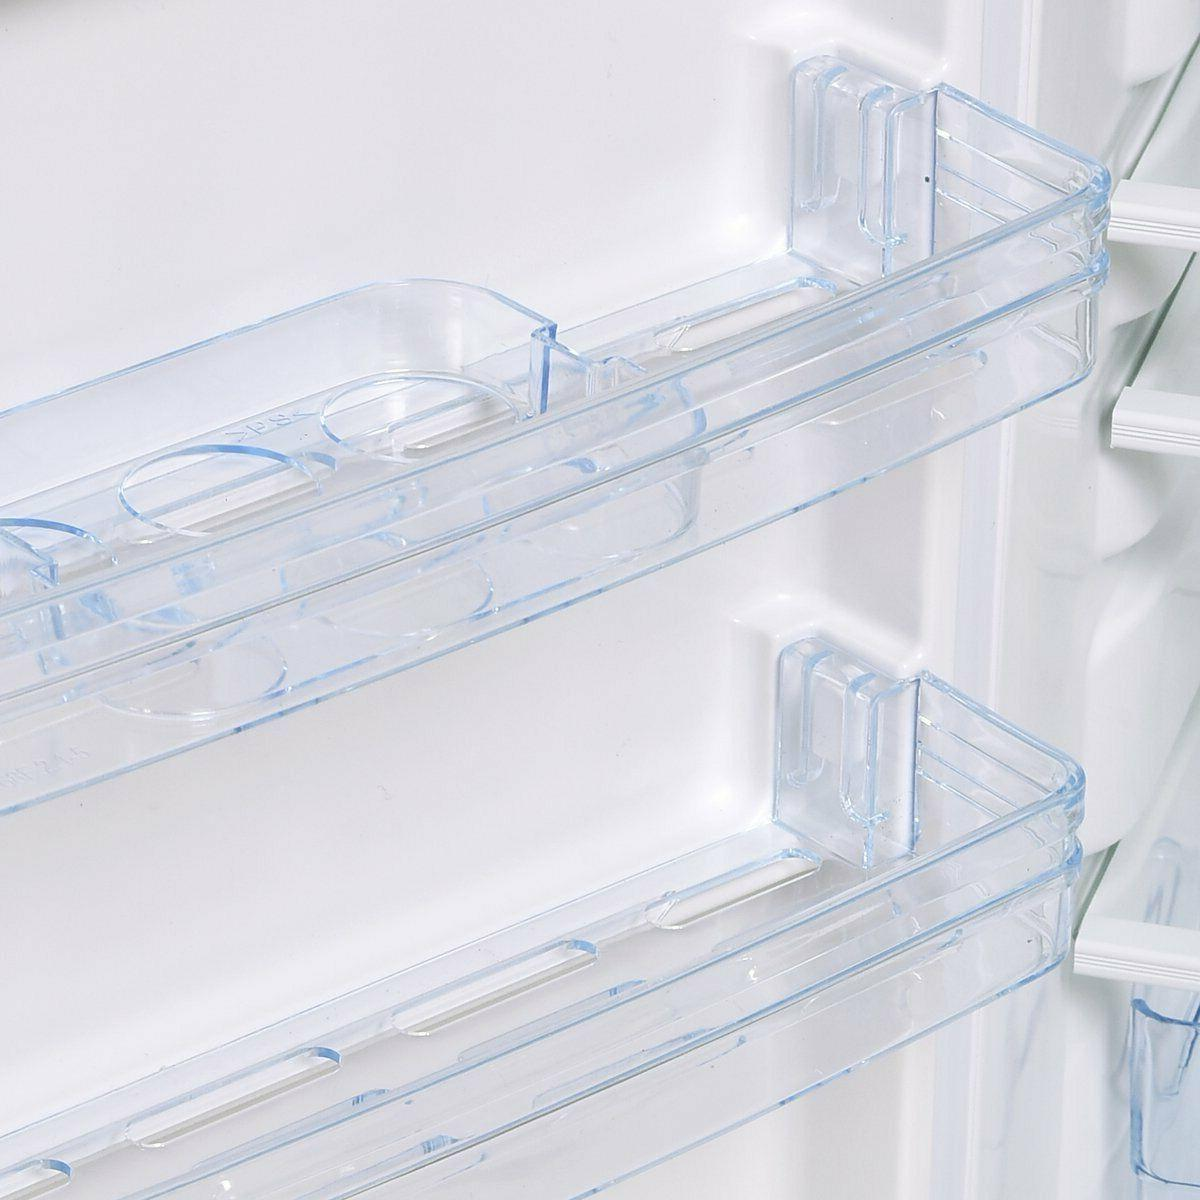 compact mini freezer removeable shelves